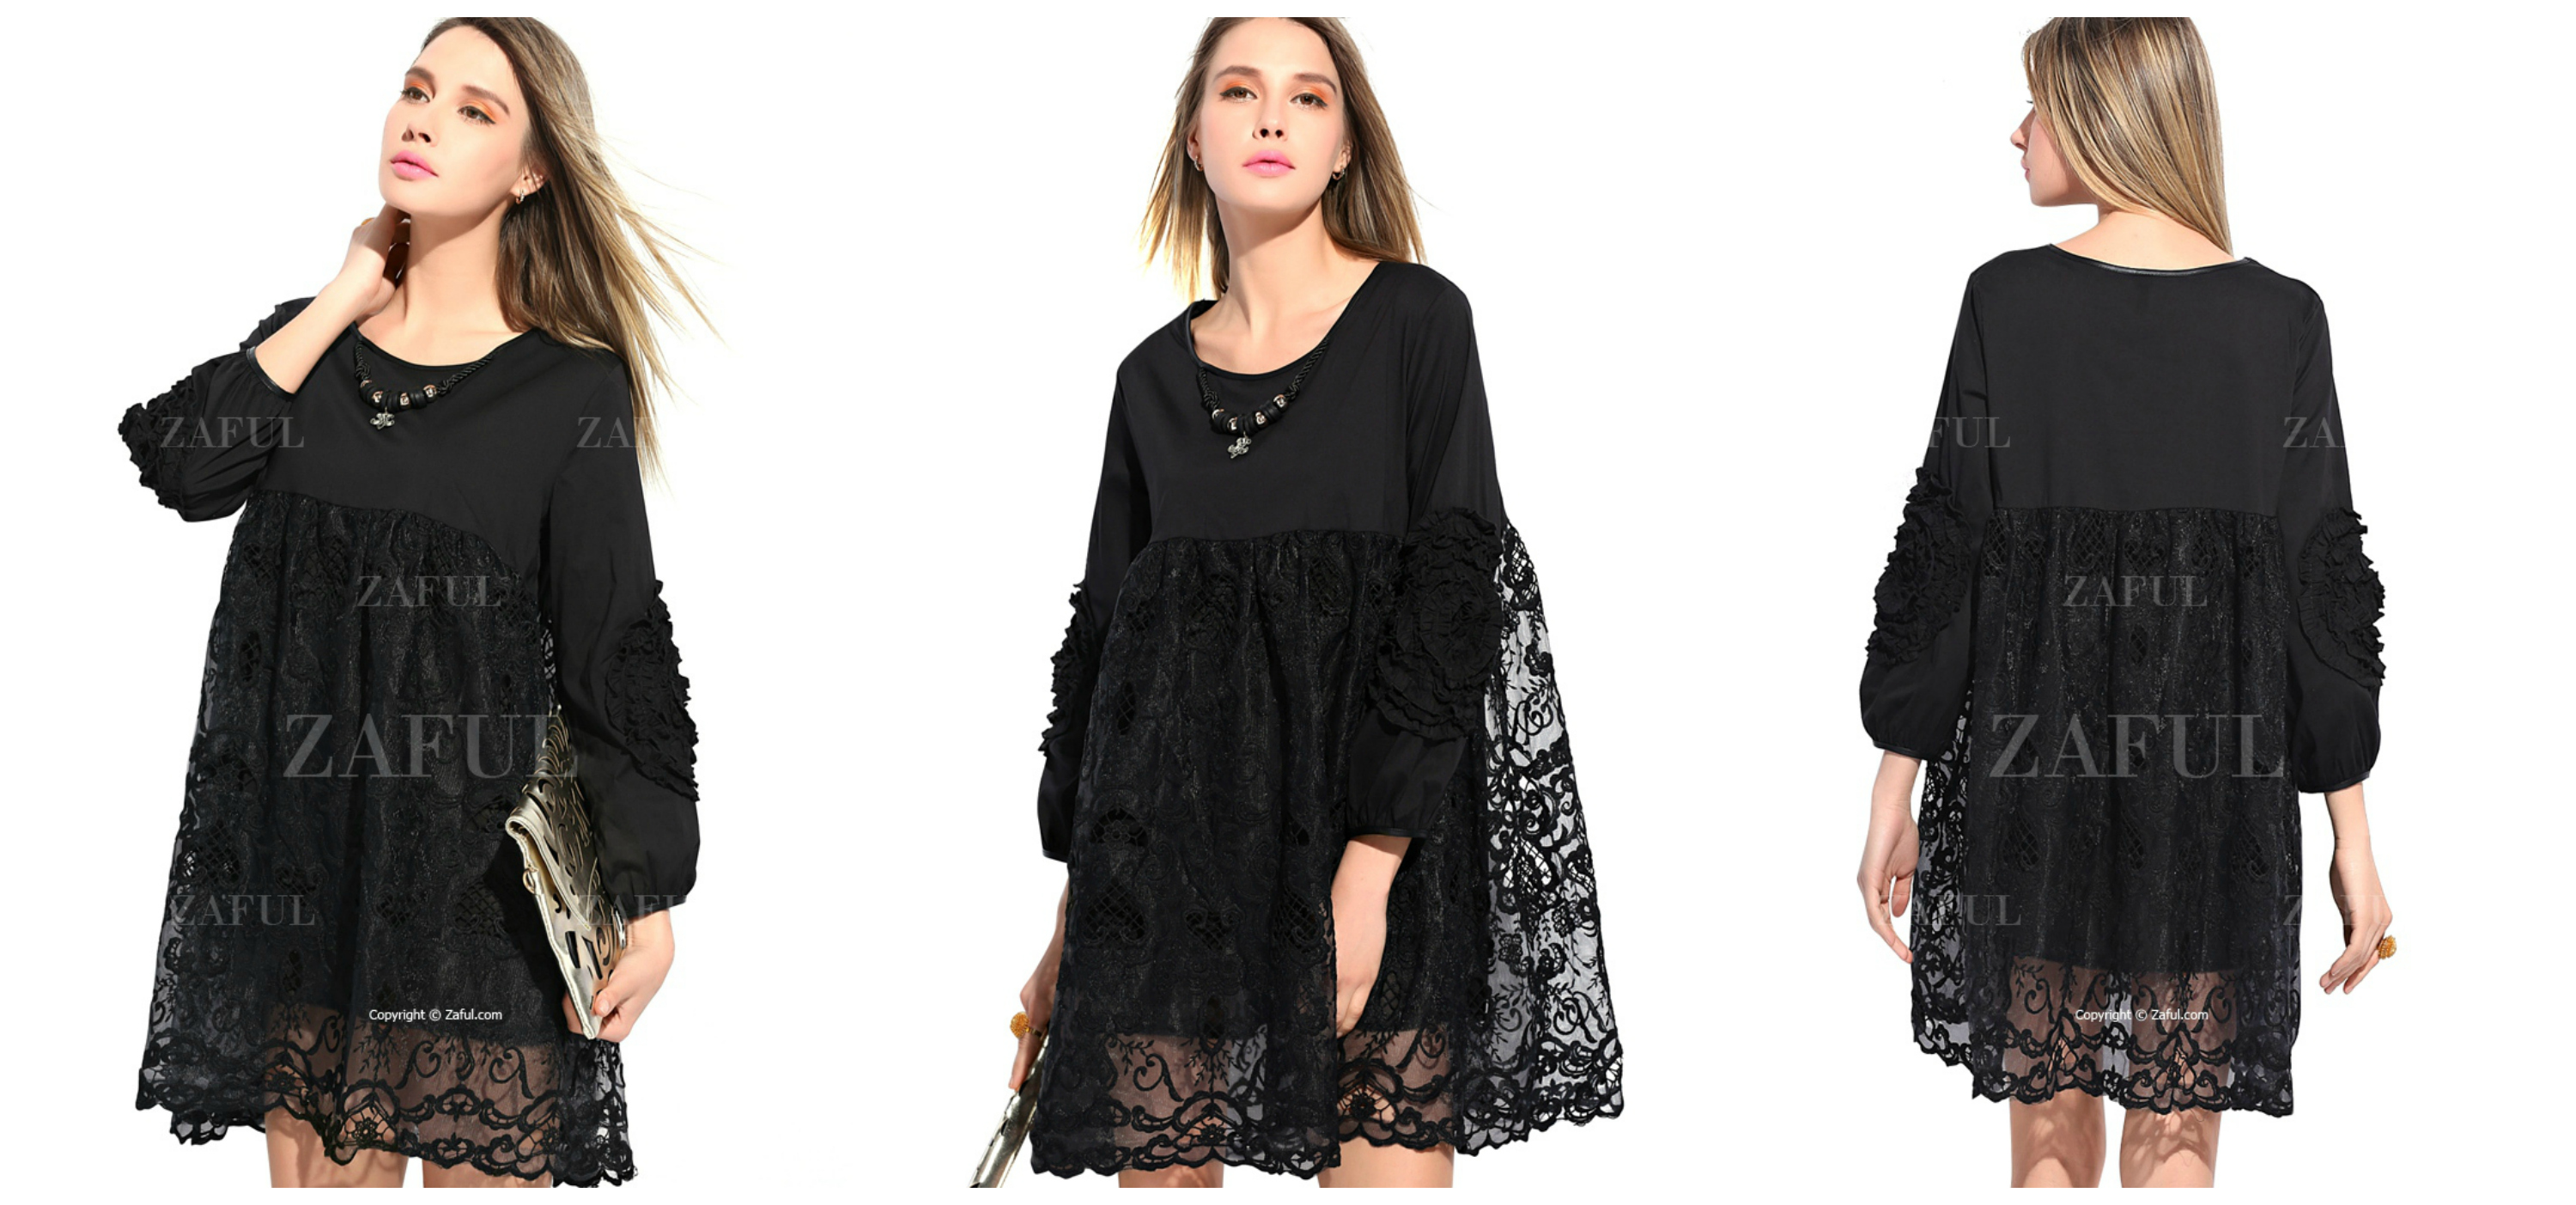 LACE-OVER-SIZE-DRESS-ZAFUL-EASTER-PARTY-DRESS